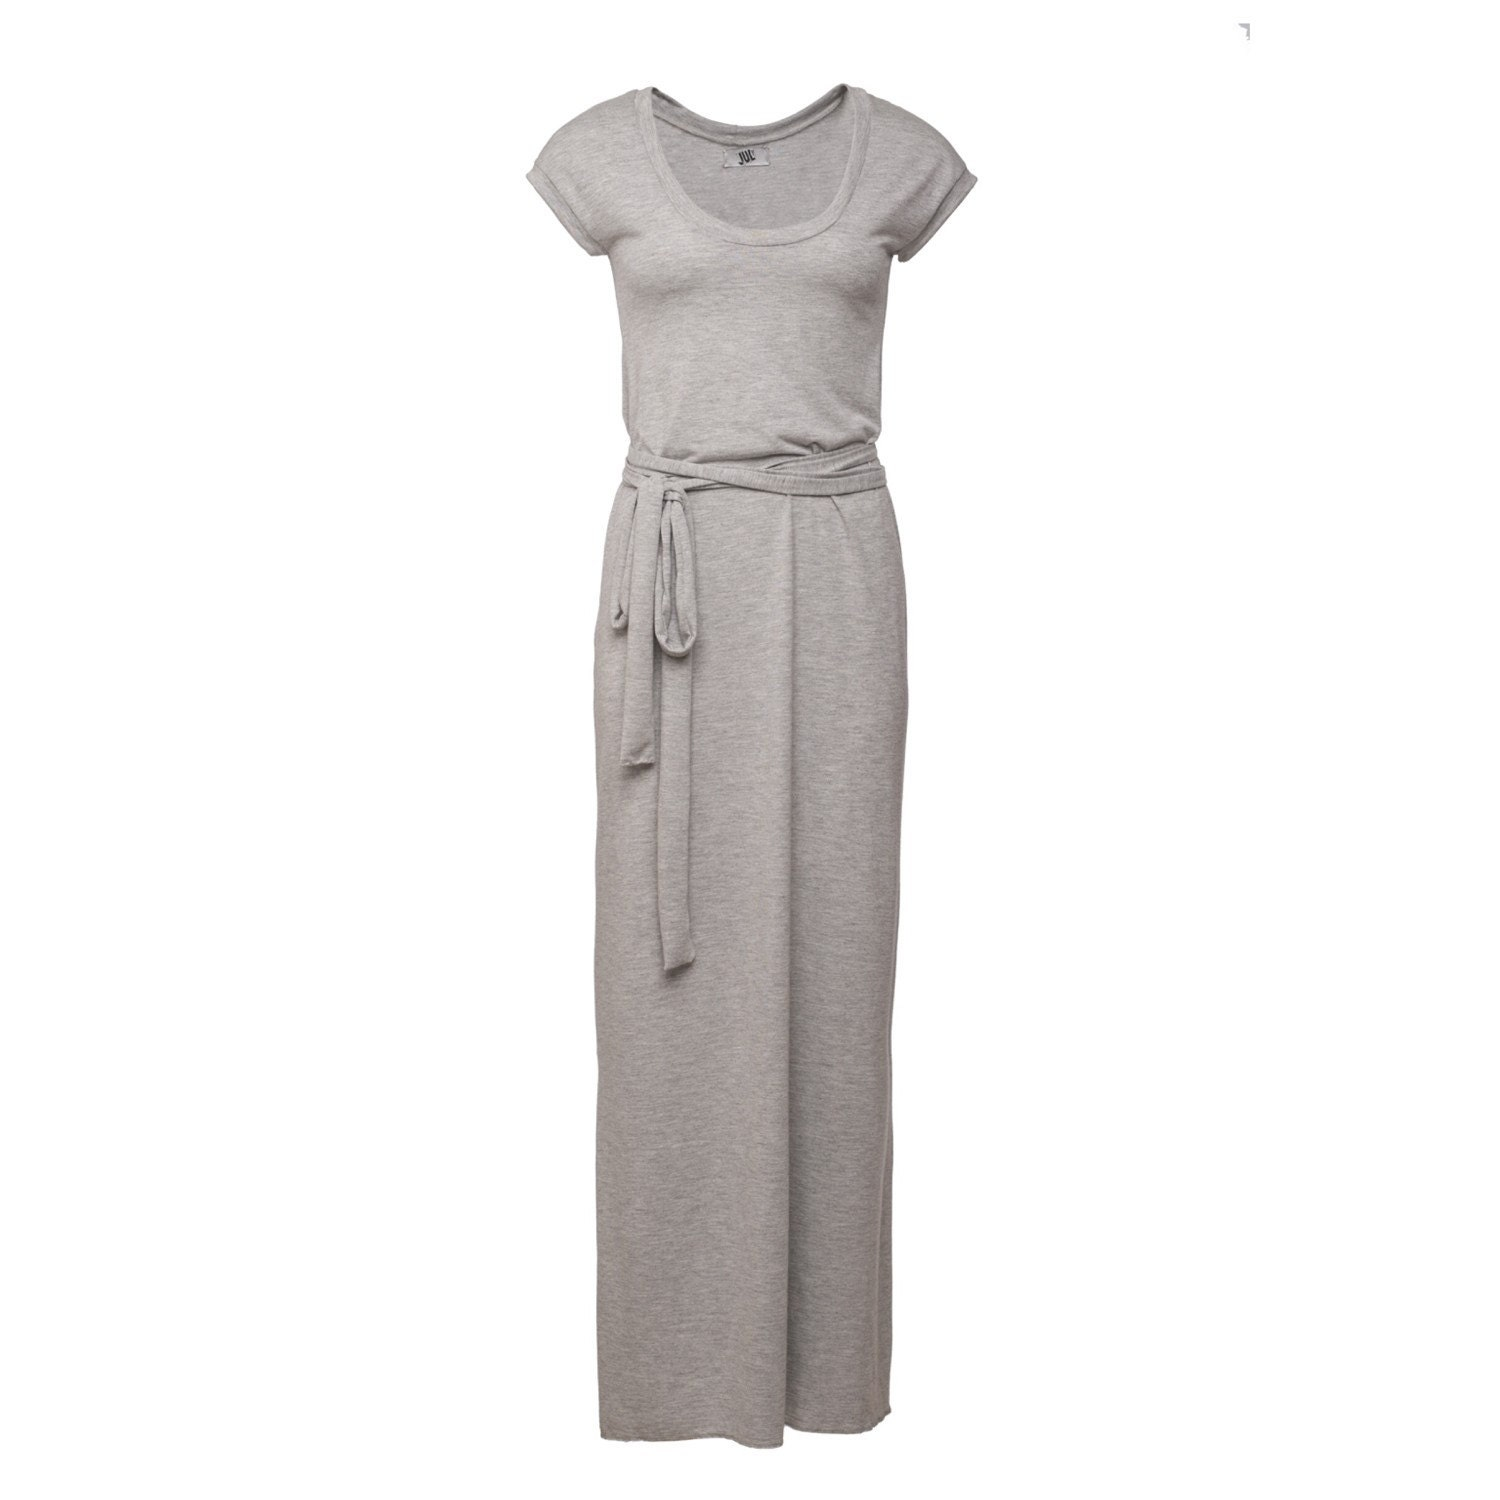 Grey Dresses For Women